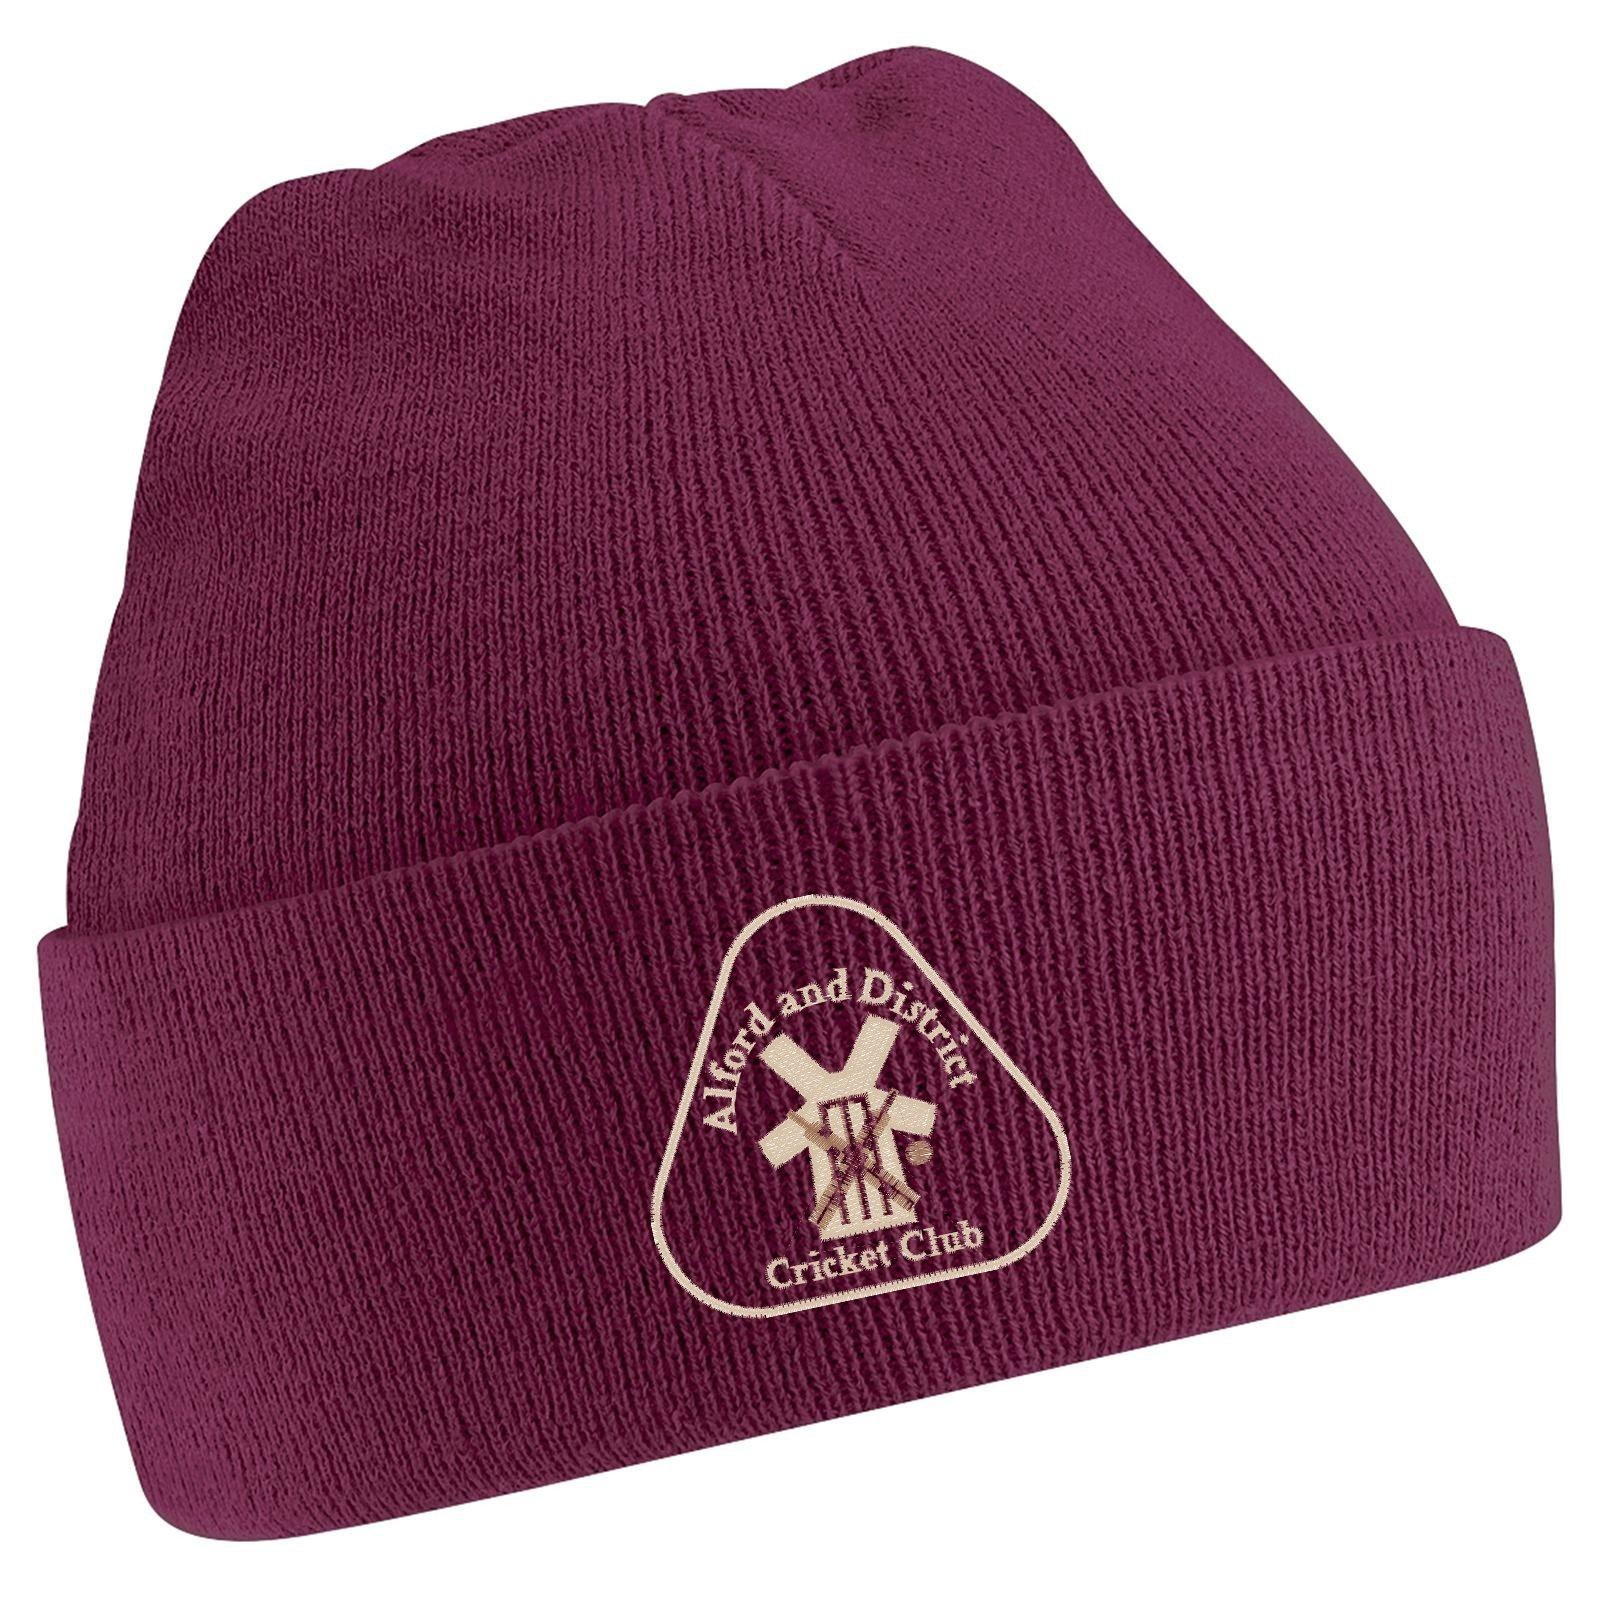 Alford and District CC Maroon Beanie